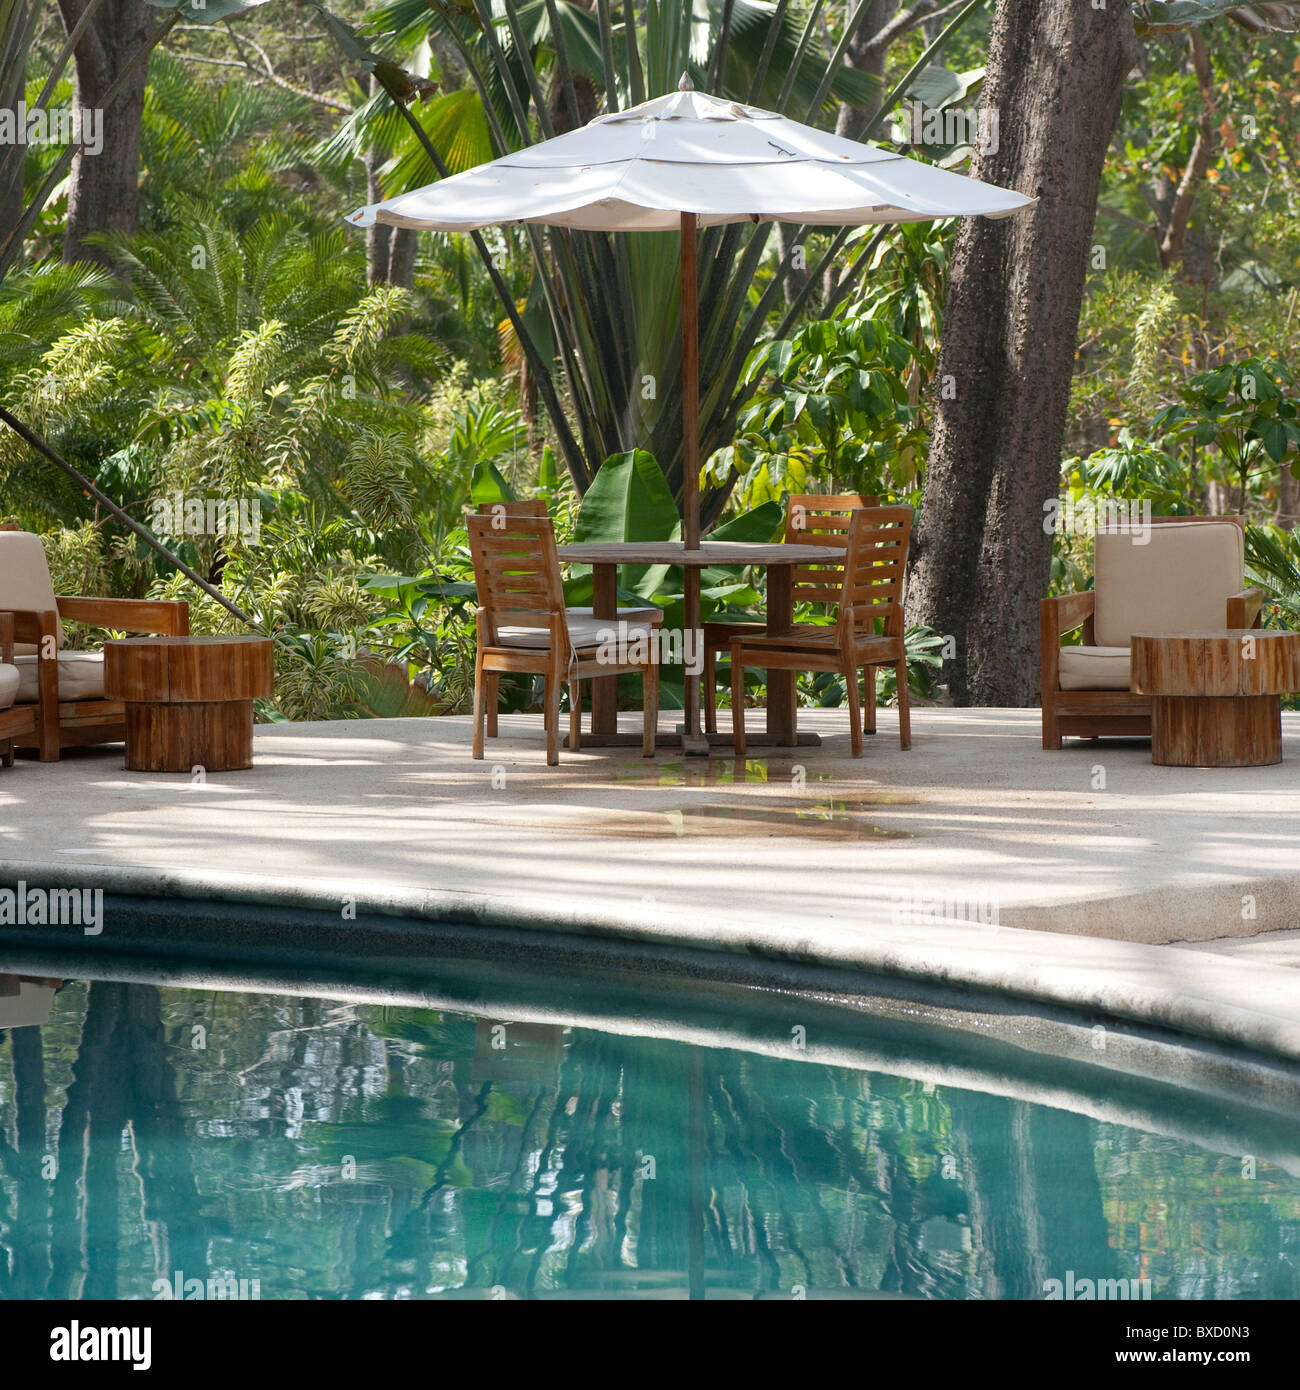 Poolside Table And Chairs In Costa Rica